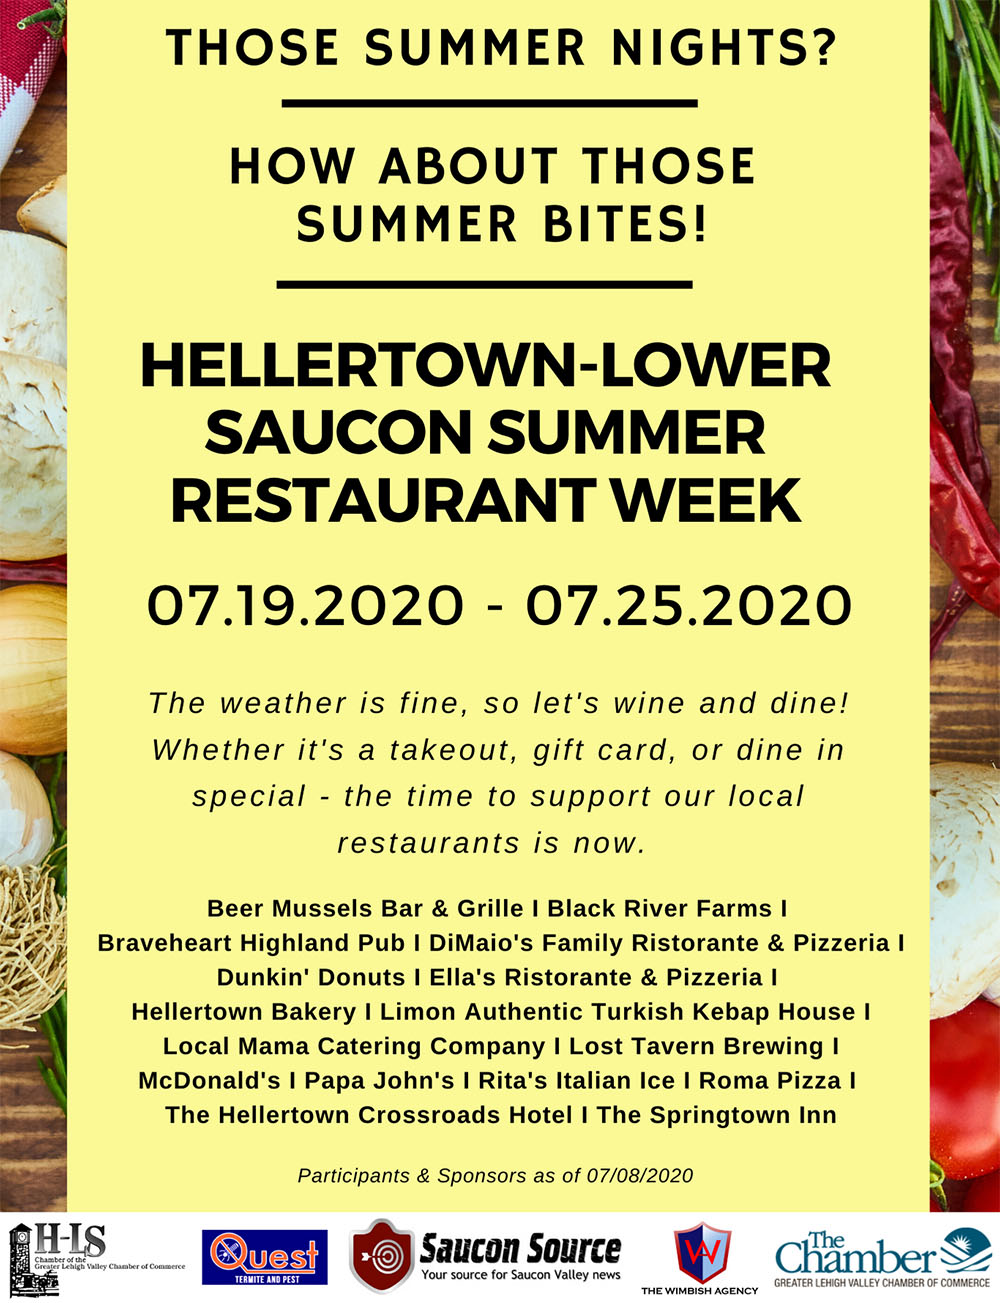 Halloween Helertown 2020 Hellertown – Lower Saucon Summer Restaurant Week 2020 | The Valley